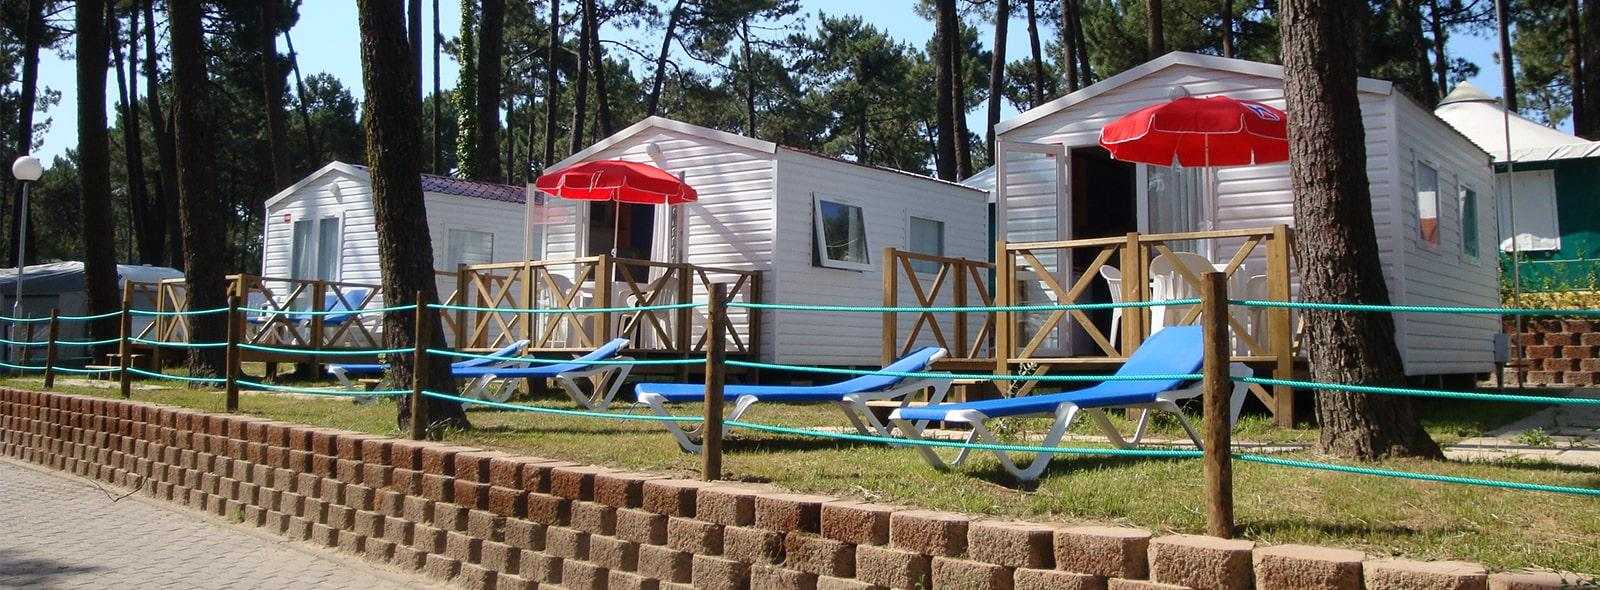 Allée mobile homes pinède camping Orbitur Viana do Castelo au Portugal